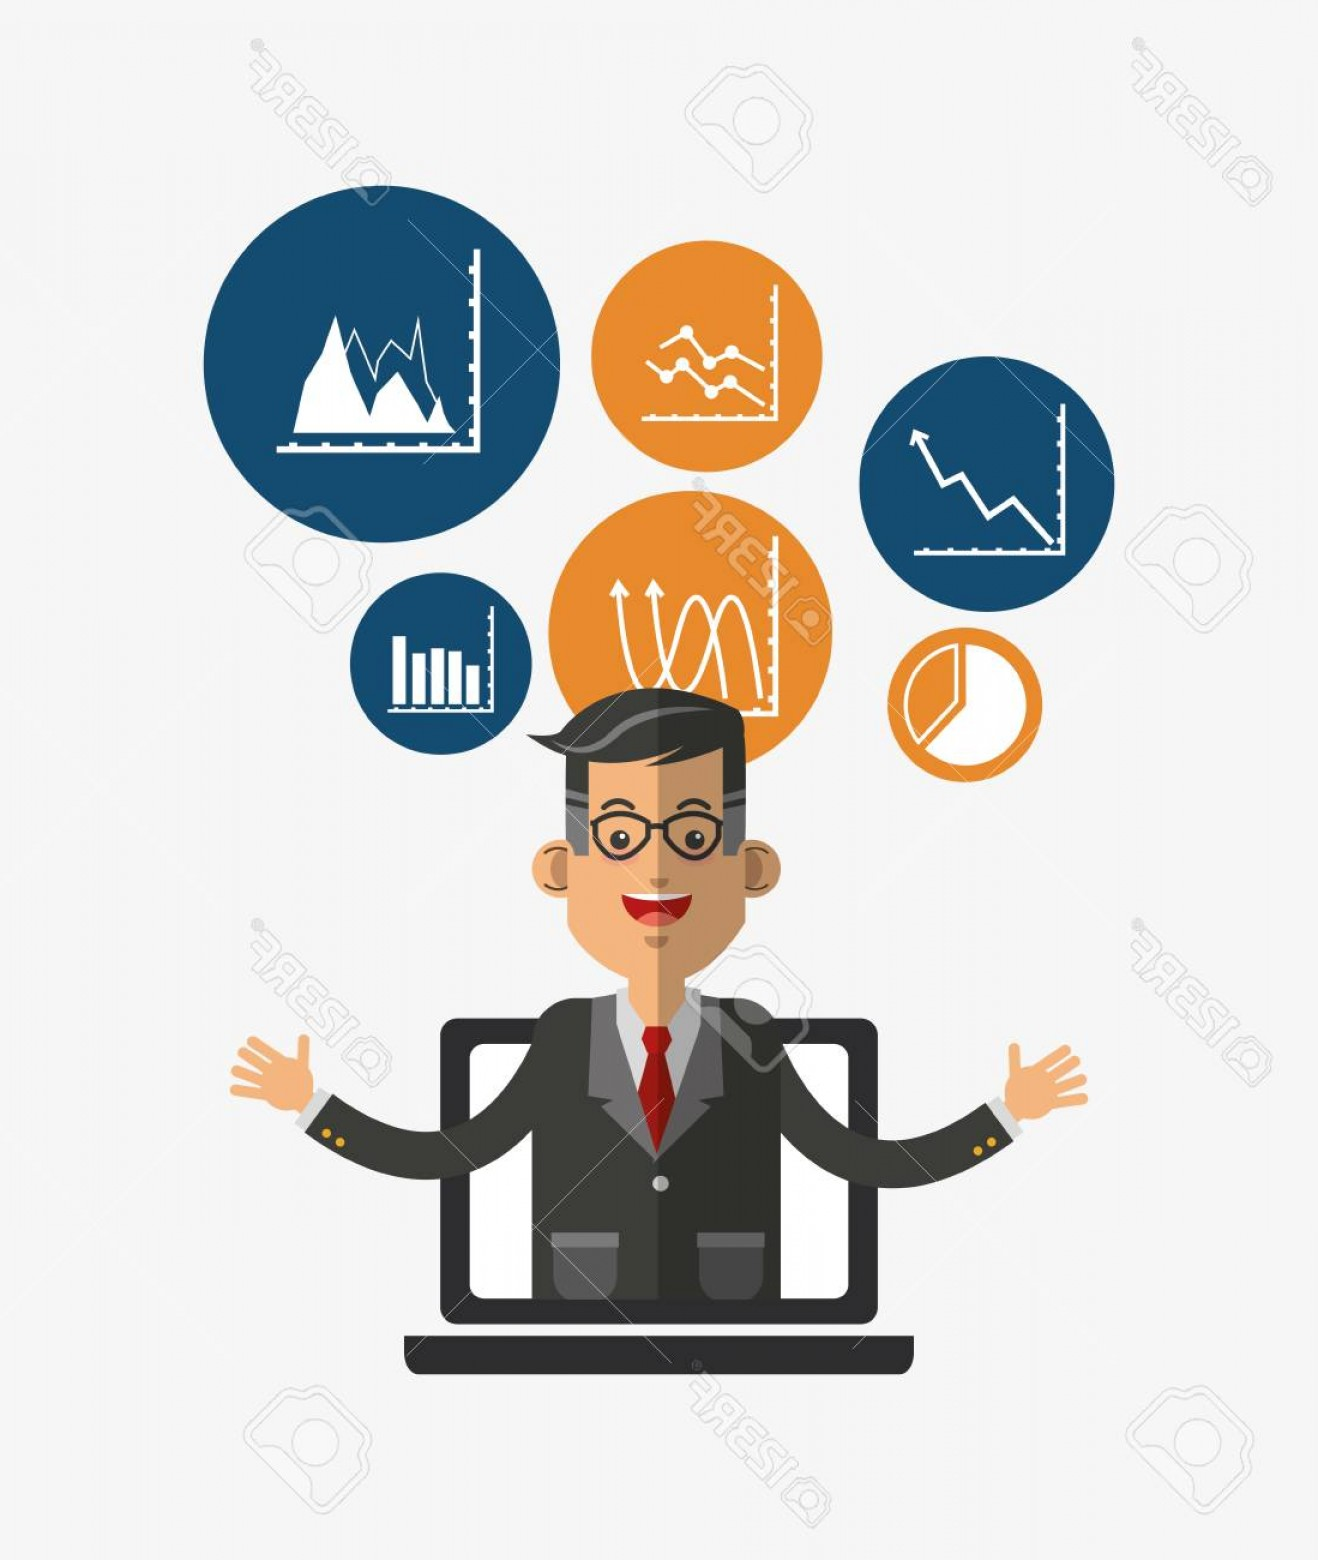 Vector Executive: Photostock Vector Executive Person In Suit With Chart Graph Business Related Icons Image Vector Illustration